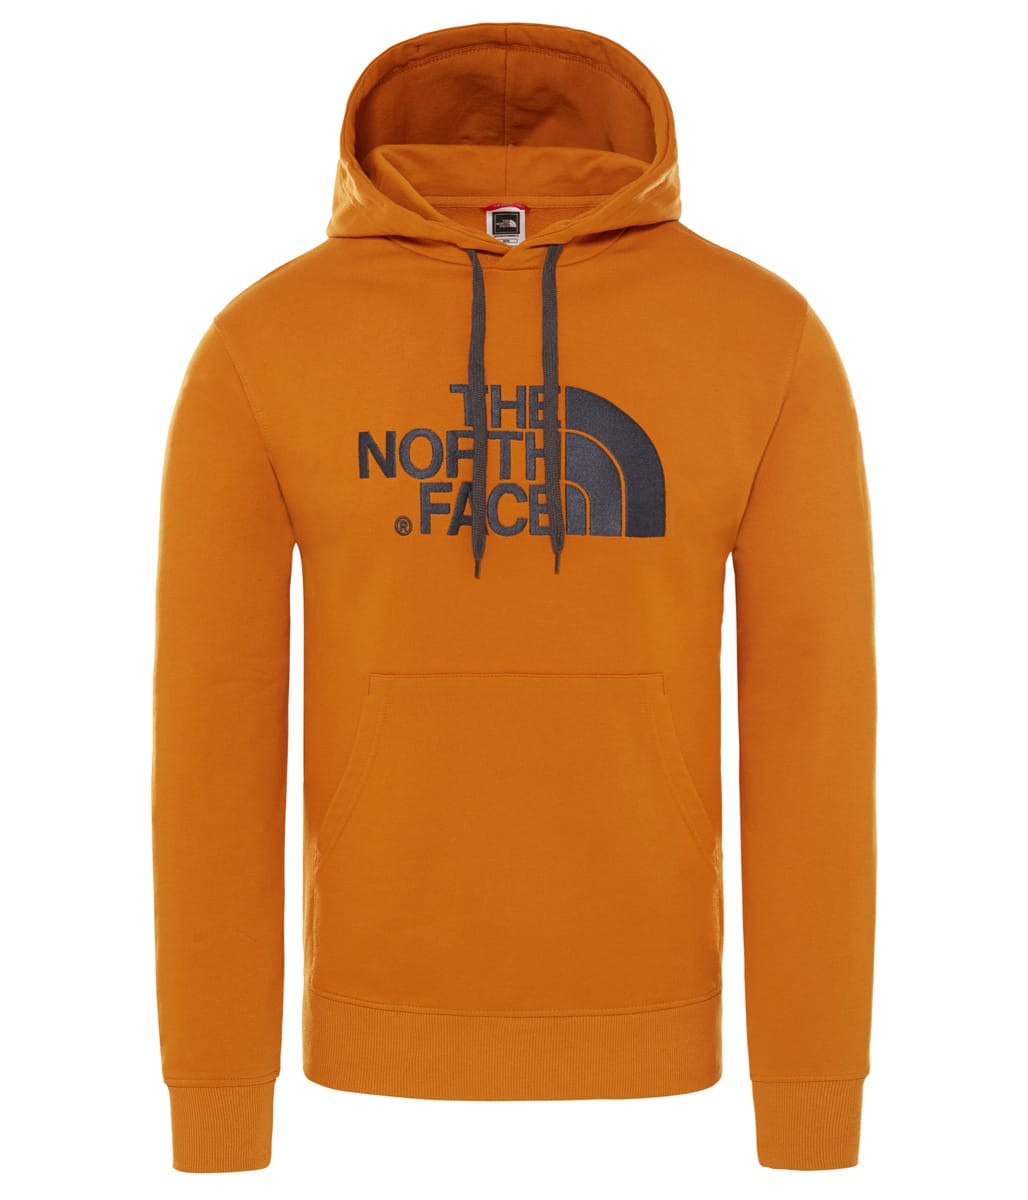 b20a62d3 ... The North Face Men's Light Drew Peak Pullover Hoodie Citrine Yellow ...